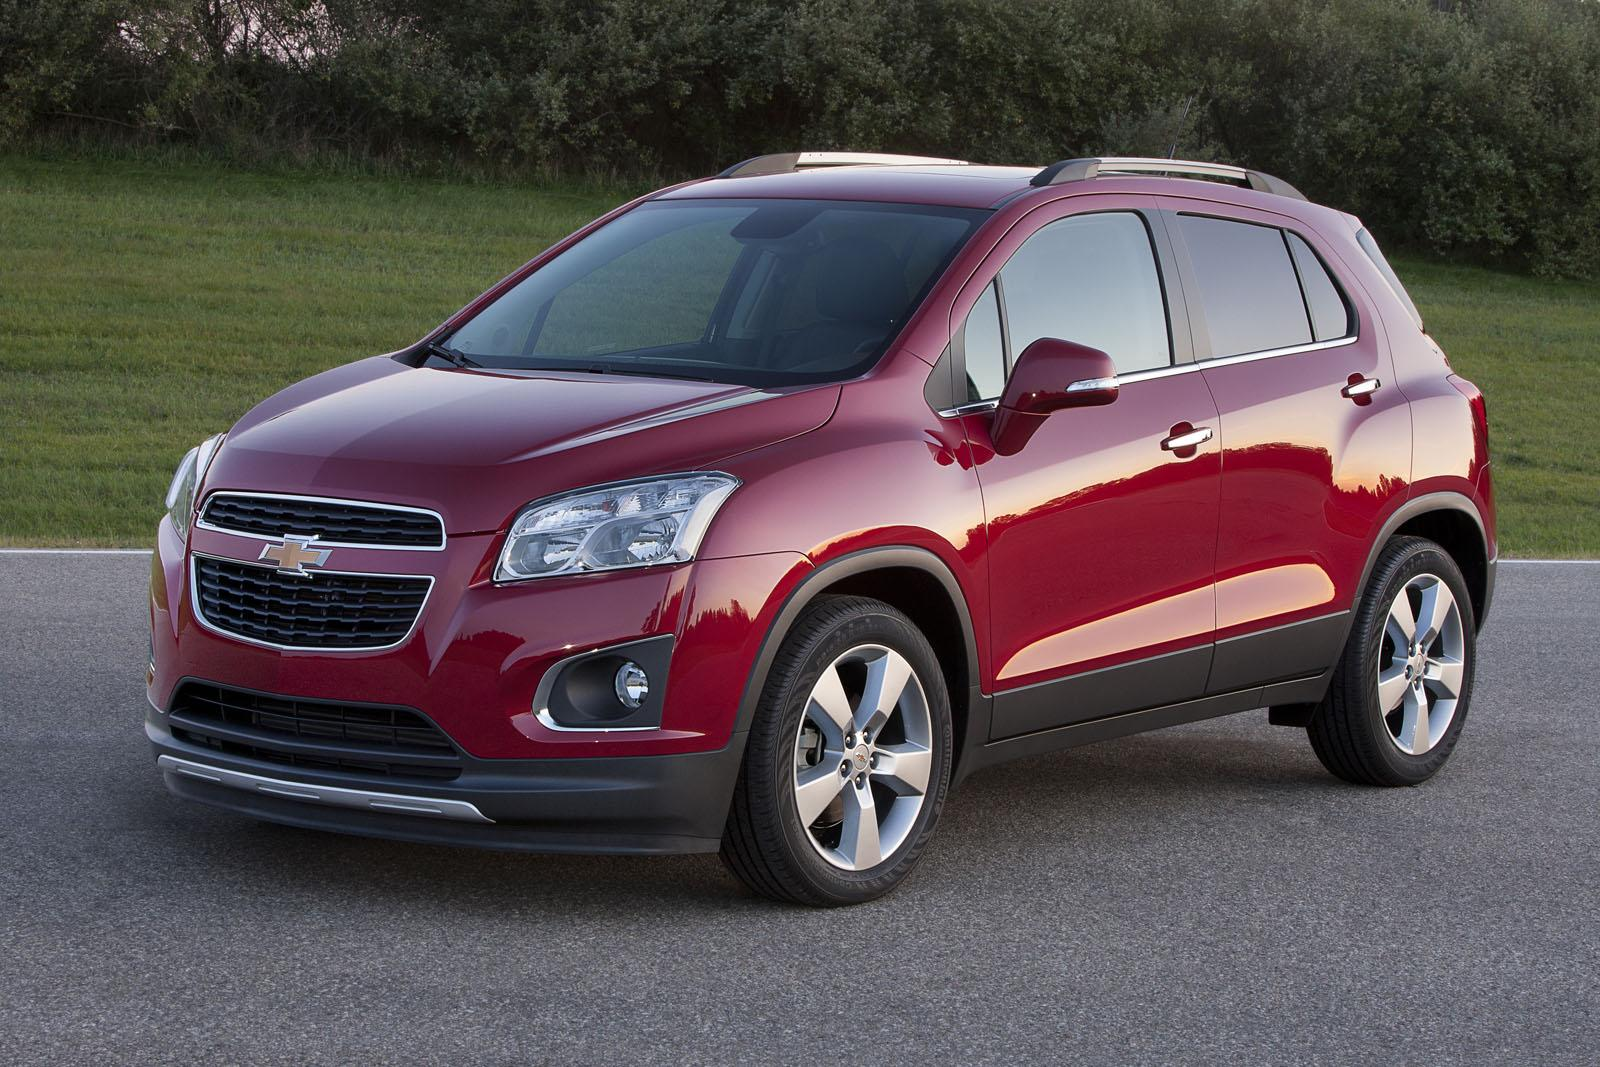 chevrolet trax technical specifications and fuel economy. Black Bedroom Furniture Sets. Home Design Ideas